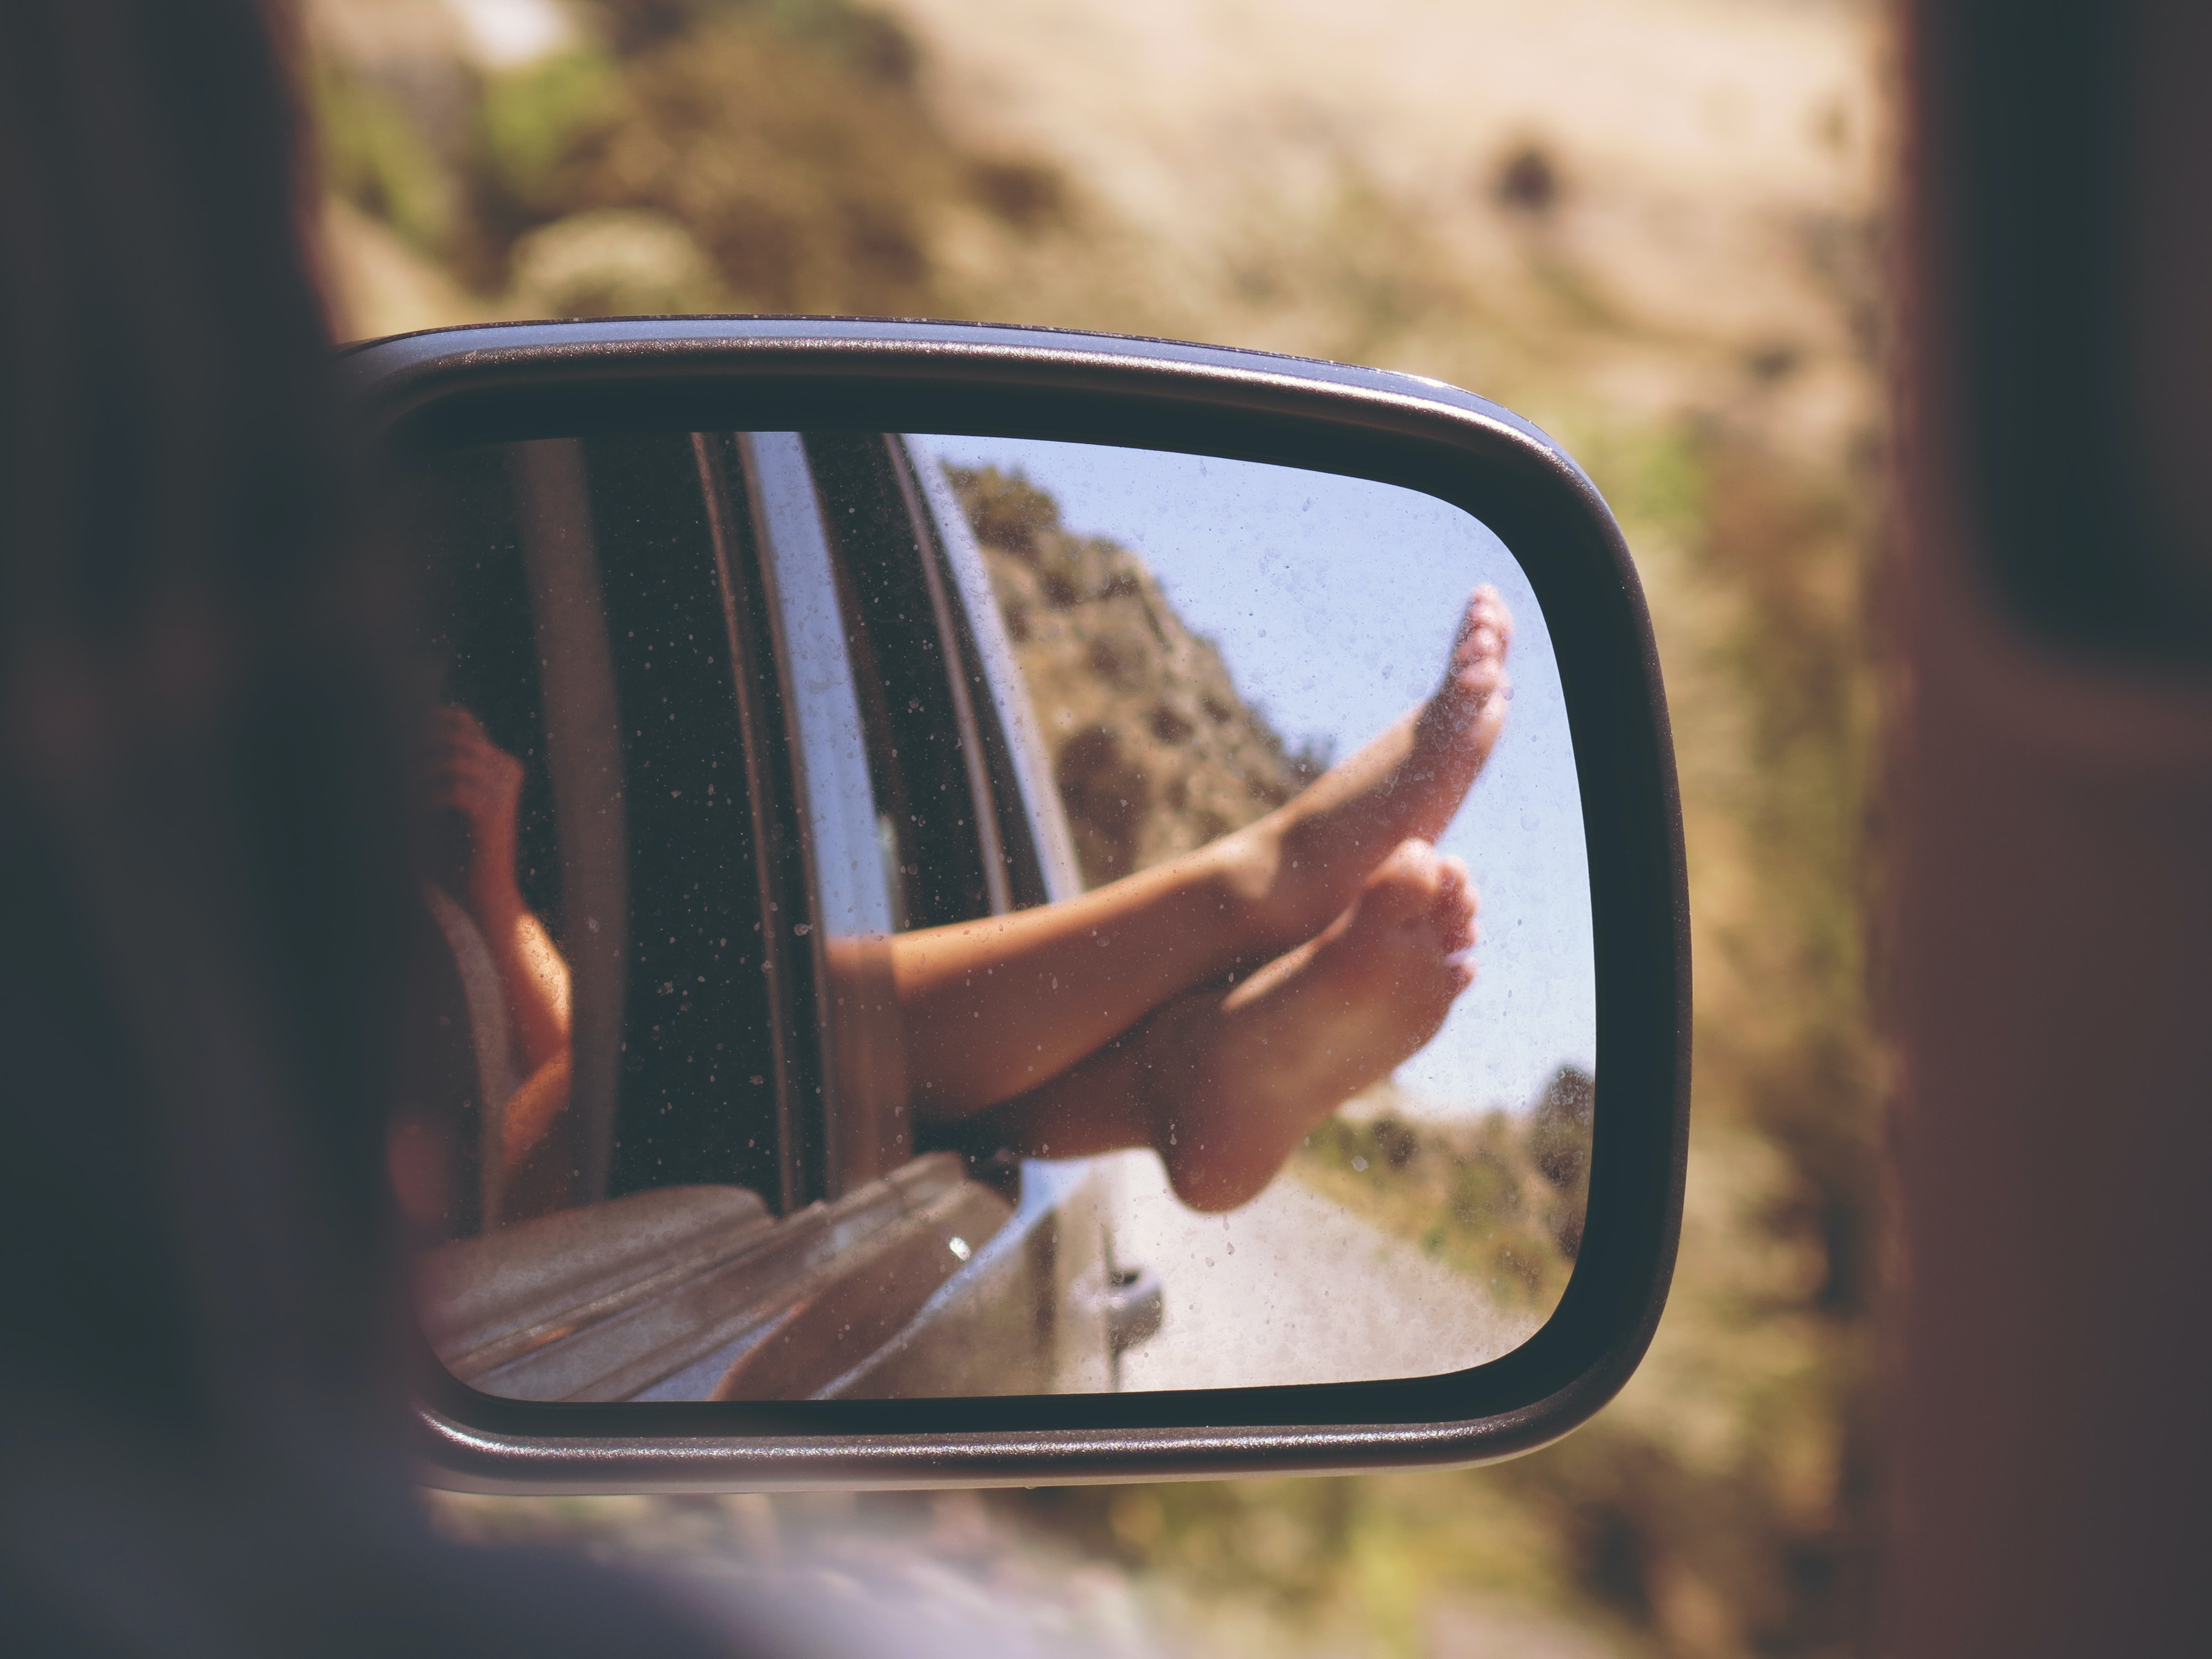 A person sticking their feet out of a car window from the perspective of the rear view mirror